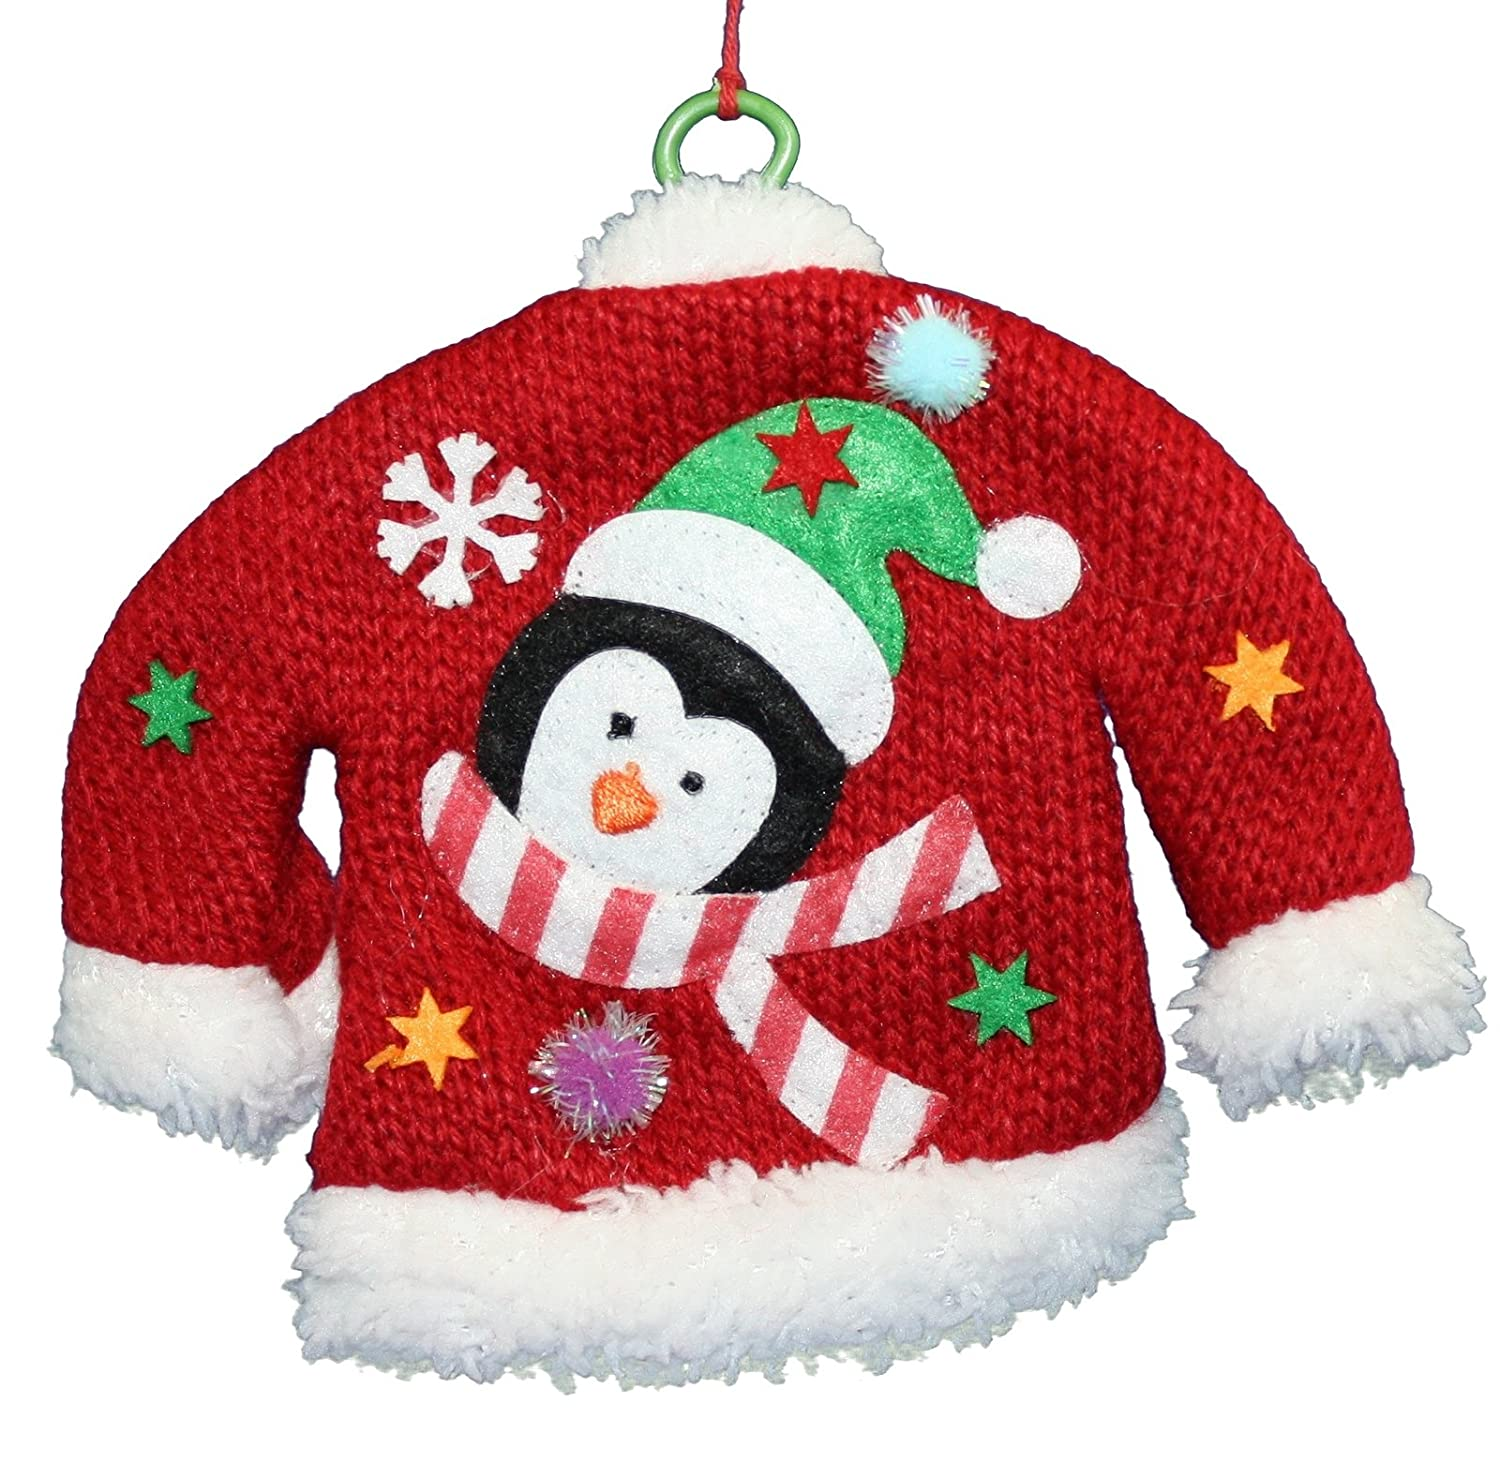 Shelburne Country Store Knitted Sweater with Wire Hanger Ornament - Penguin